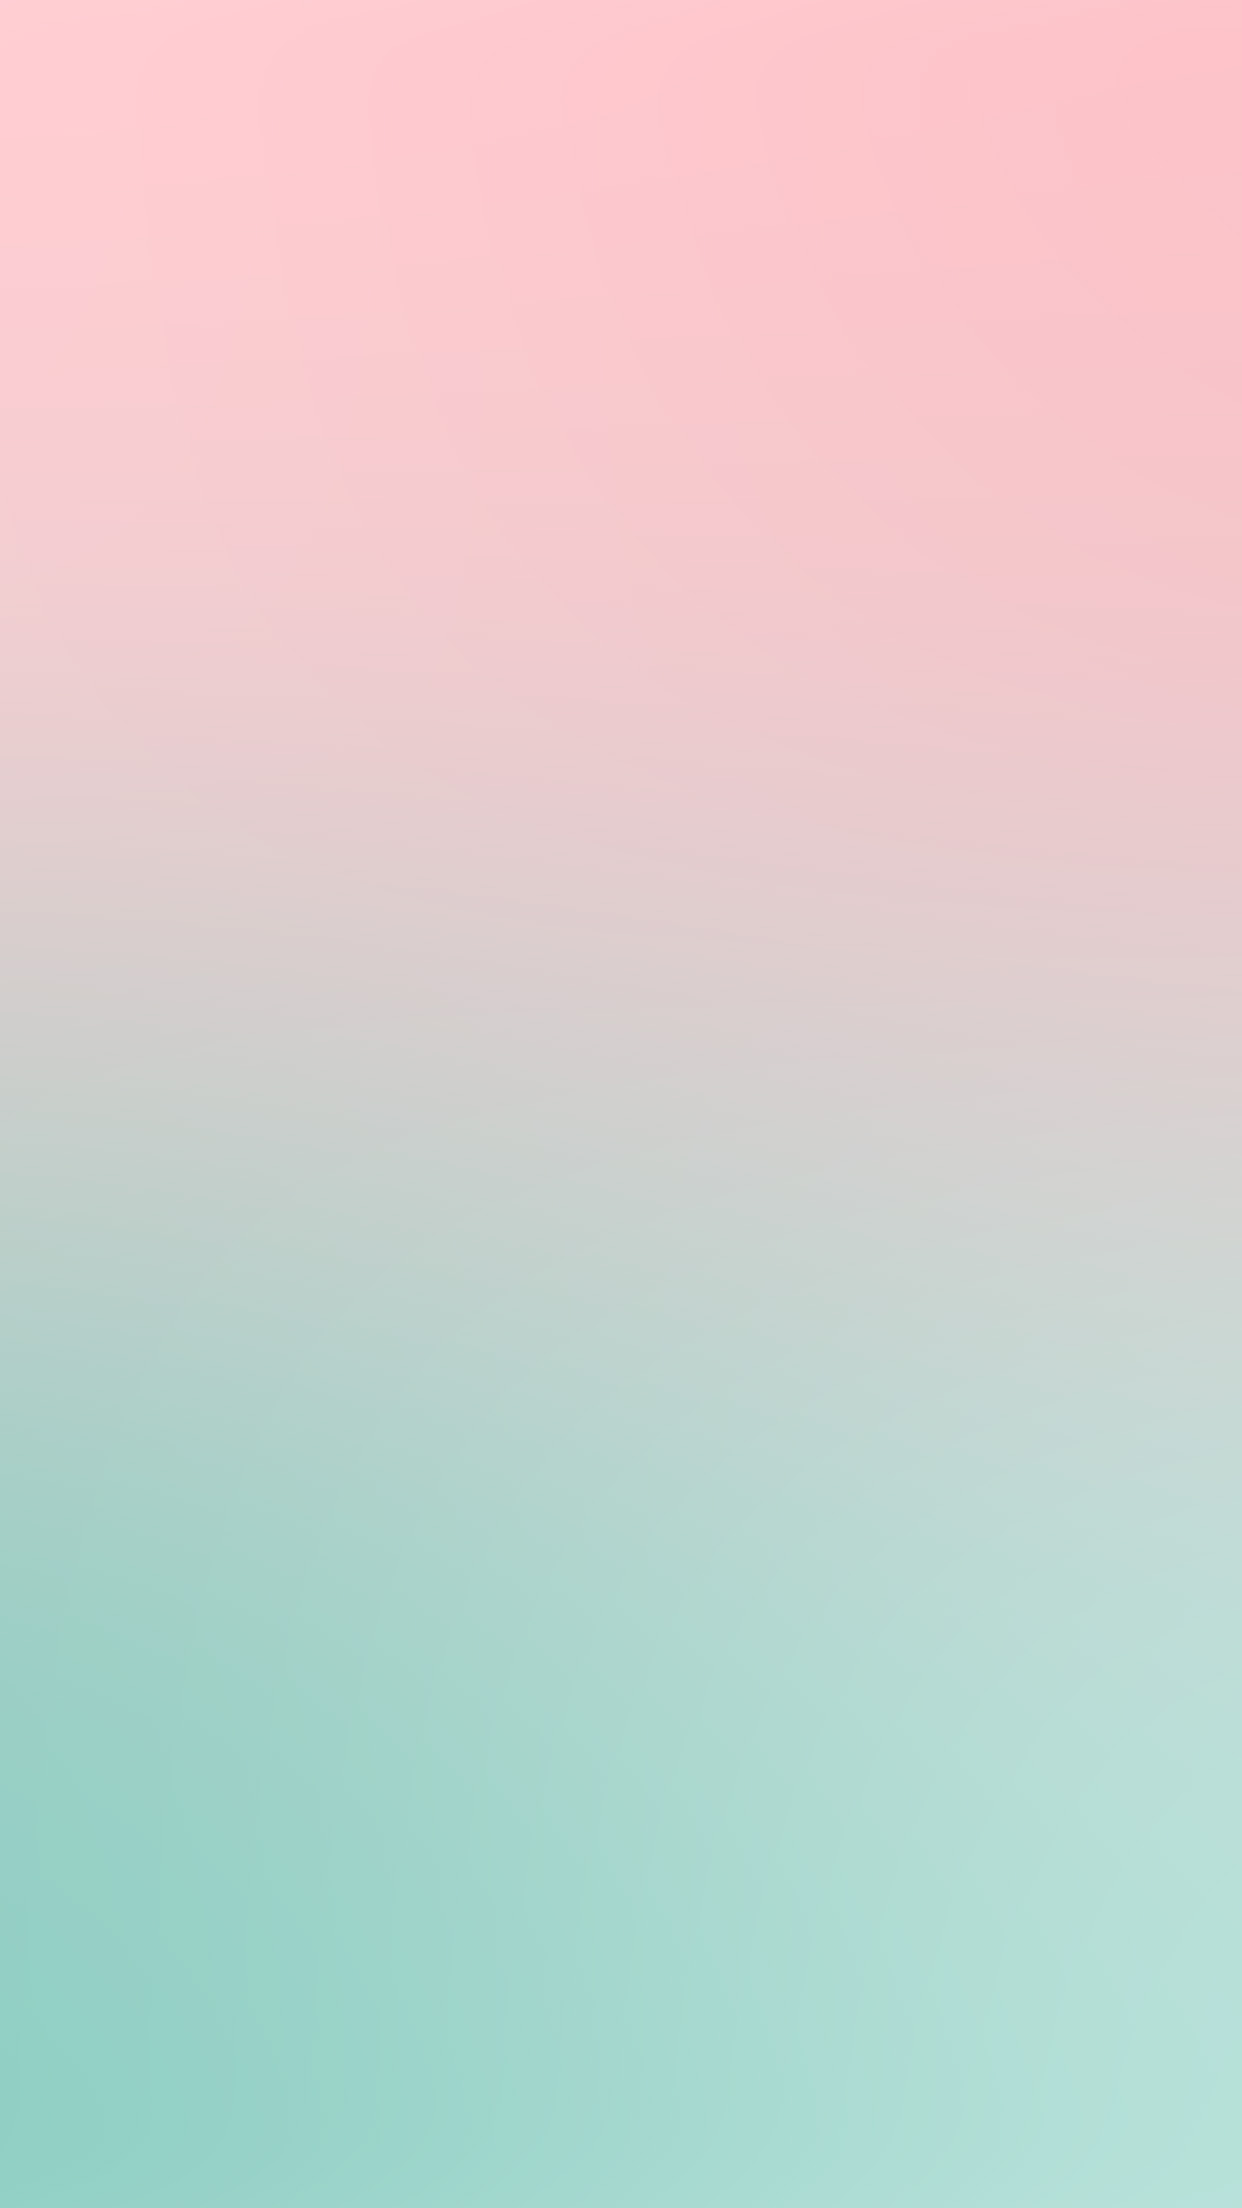 Sn08 Pink Pastel Blur Gradation Wallpaper